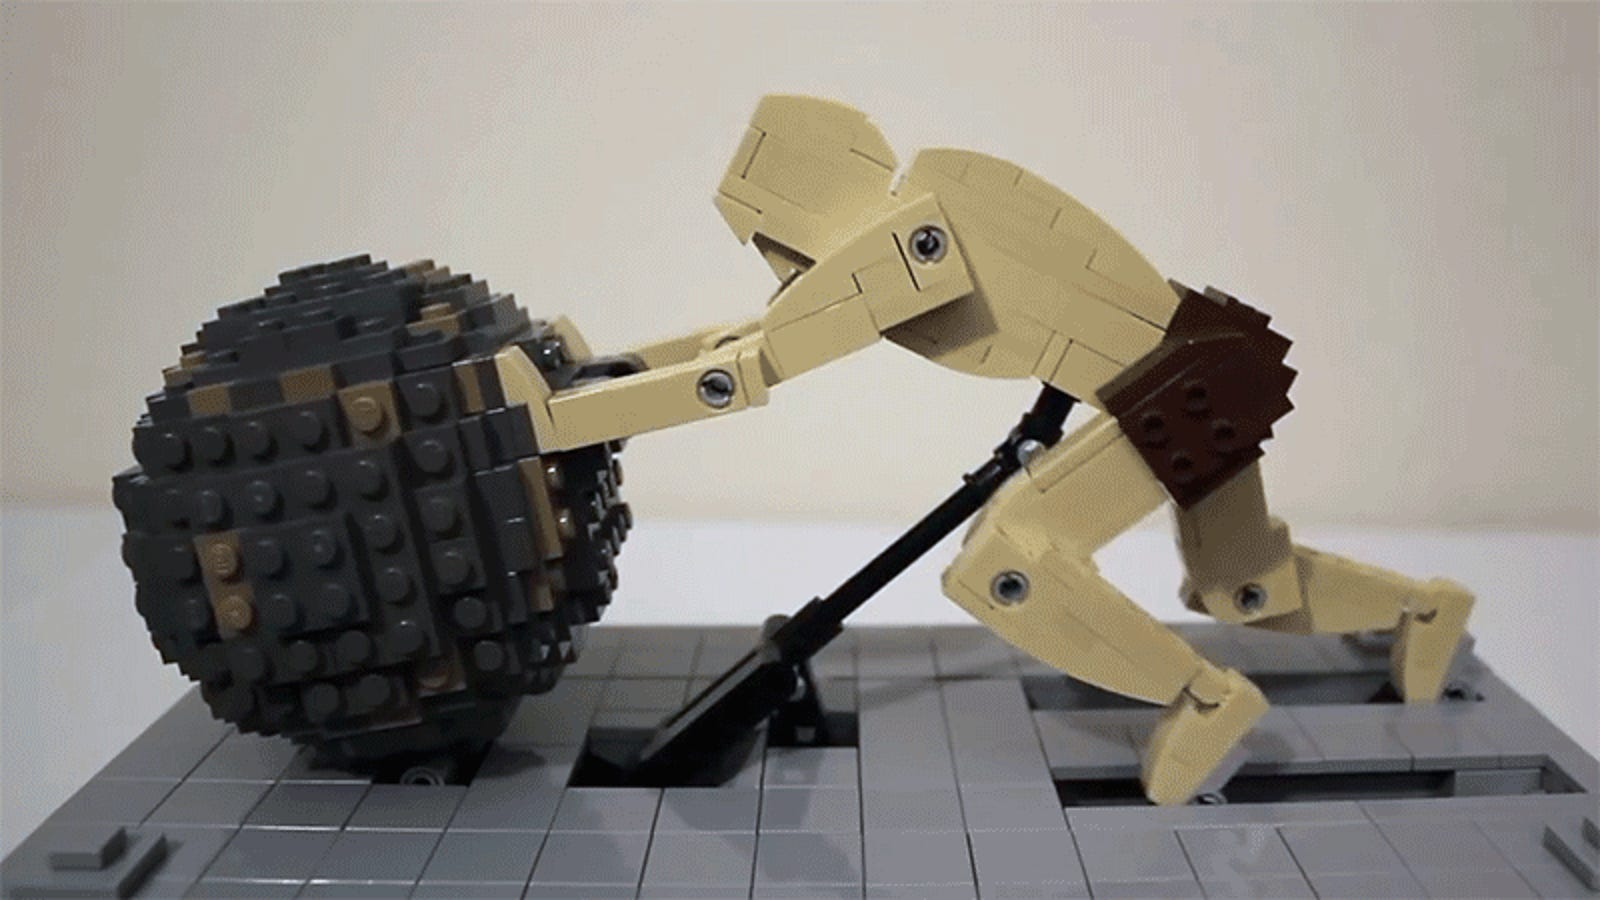 Watching a Lego Sisyphus Perpetually Push a Boulder Is Unimaginably Relaxing